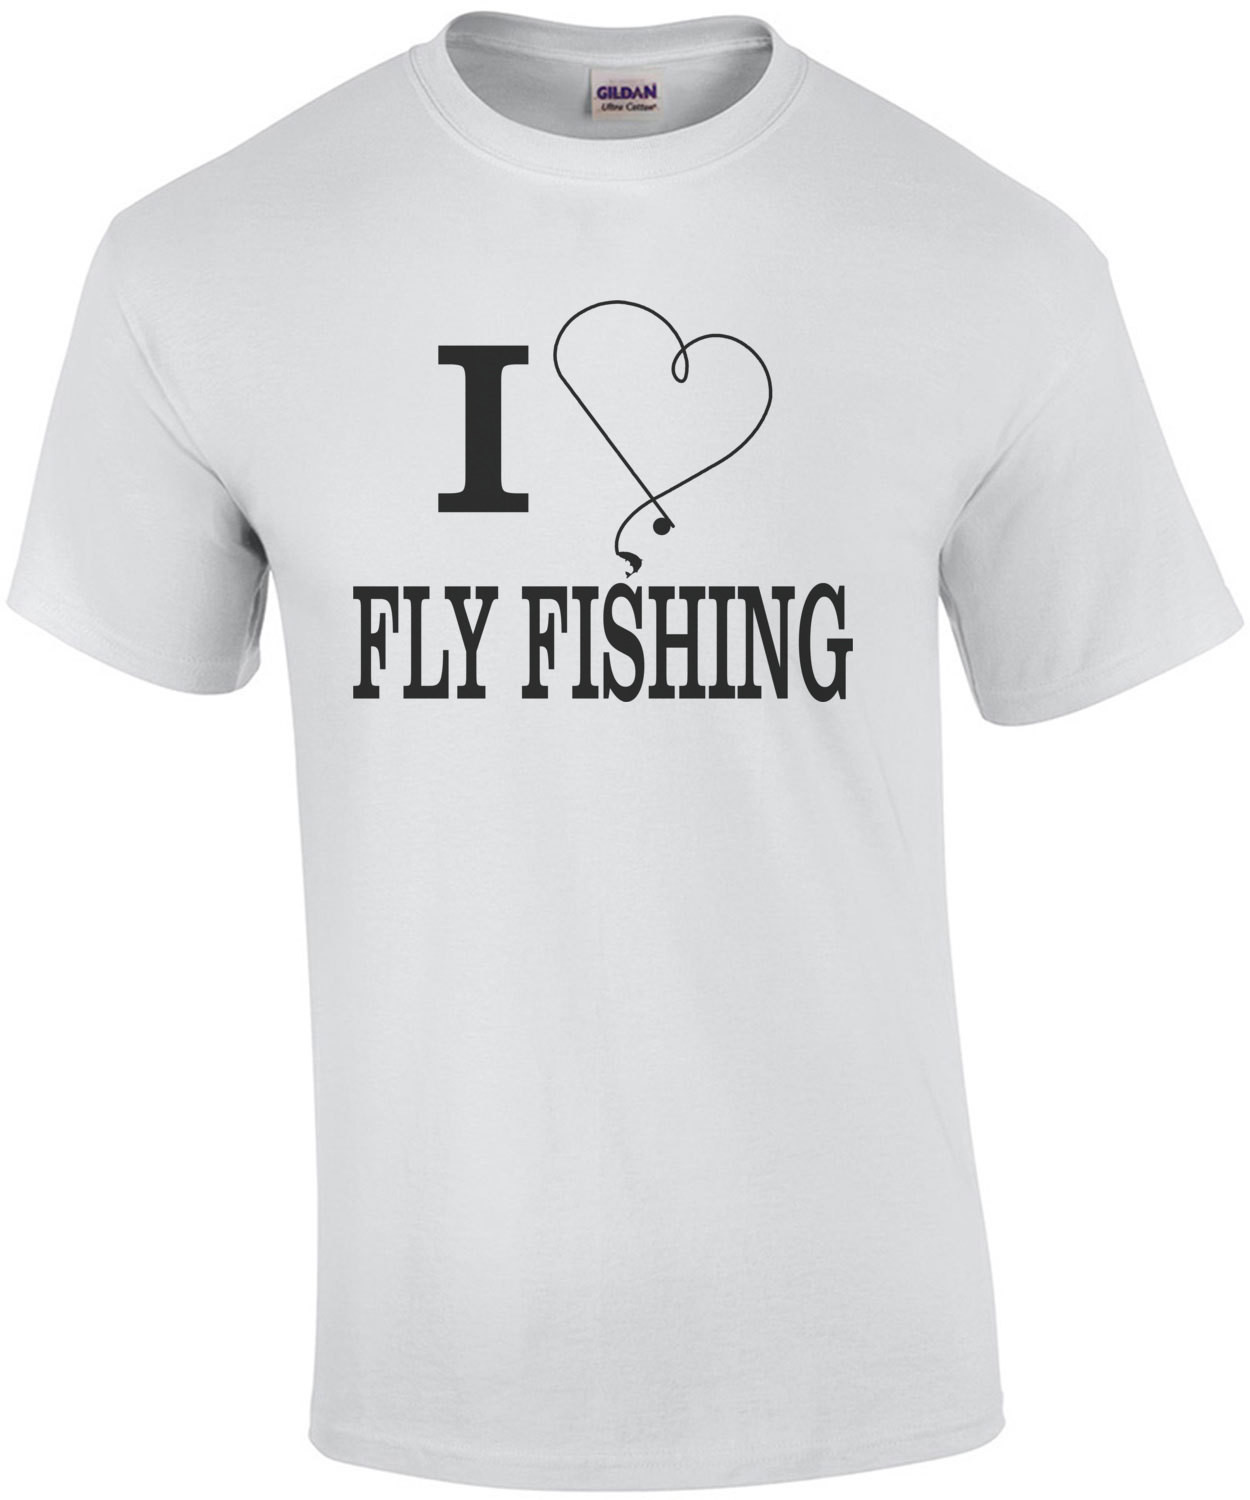 I Heart Fly Fishing T-Shirt